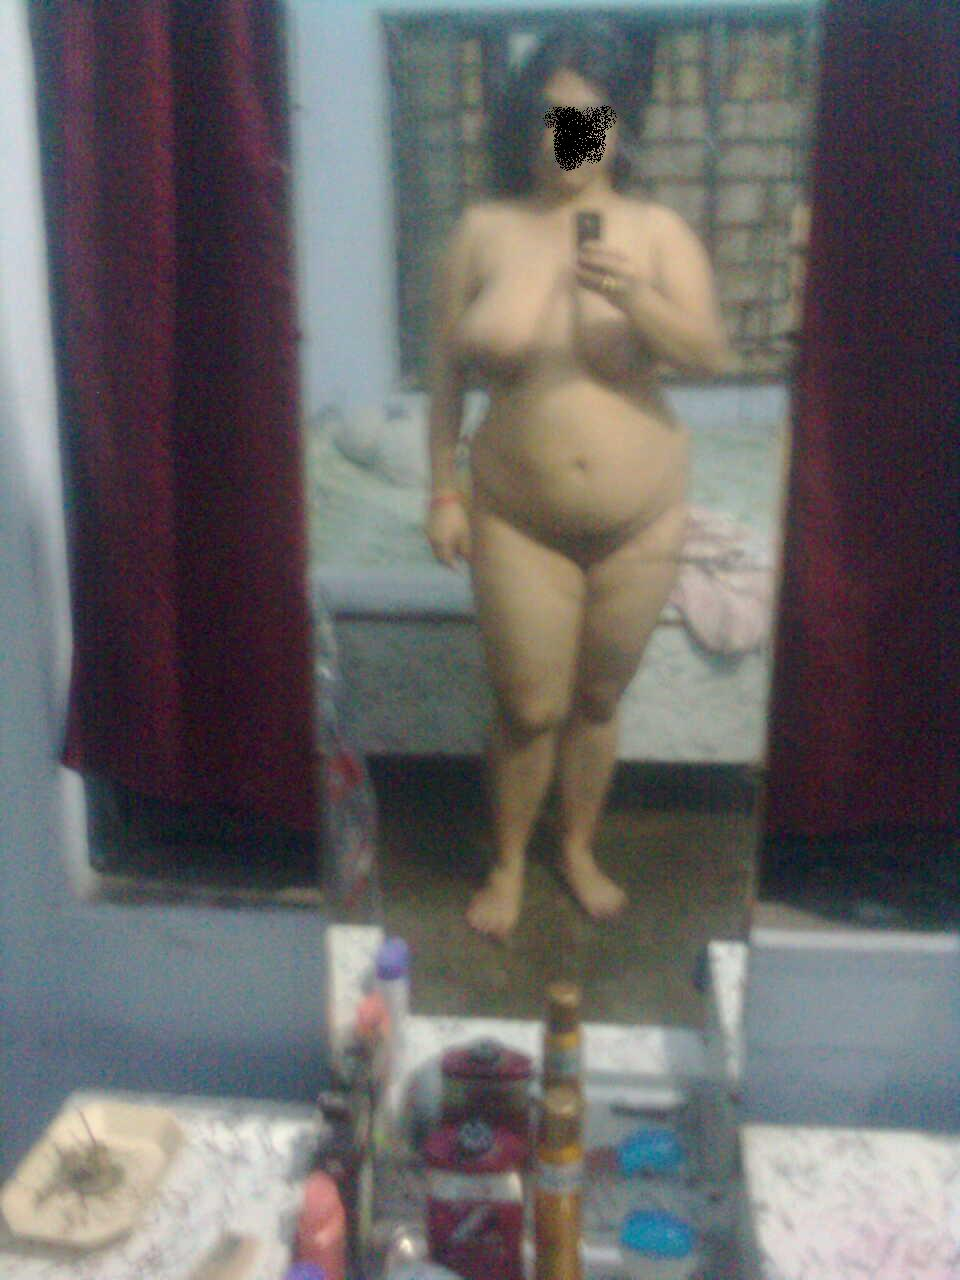 Have Read This Article Bbw Bhabhi Huge Melon Self Shot With The Title